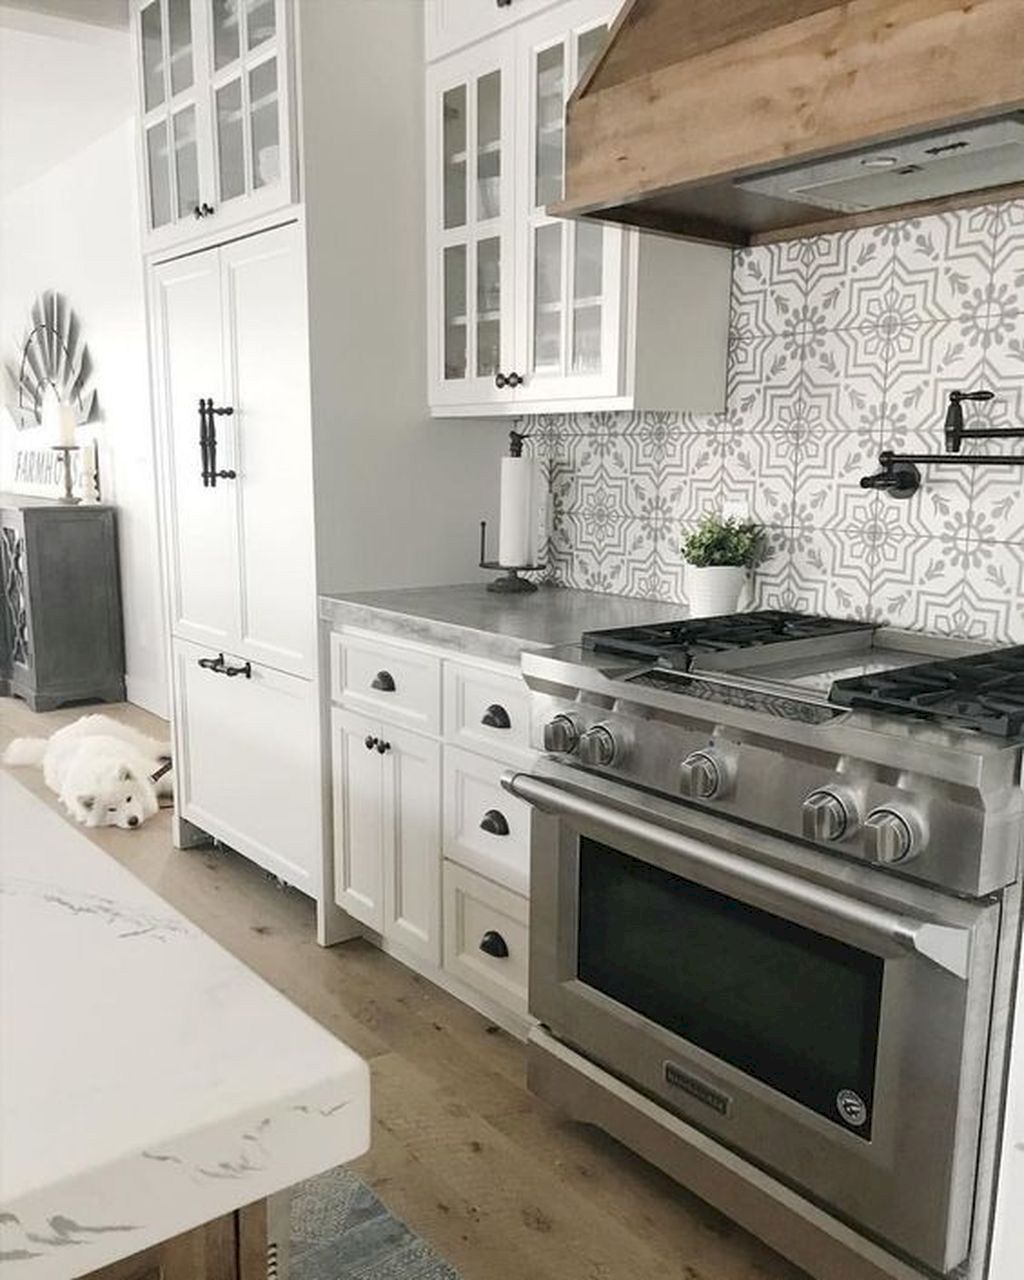 Fabulous Kitchen Backsplash Ideas For A Clean Culinary Experience Home To Z White Wood Kitchens Farmhouse Kitchen Backsplash Farmhouse Kitchen Design